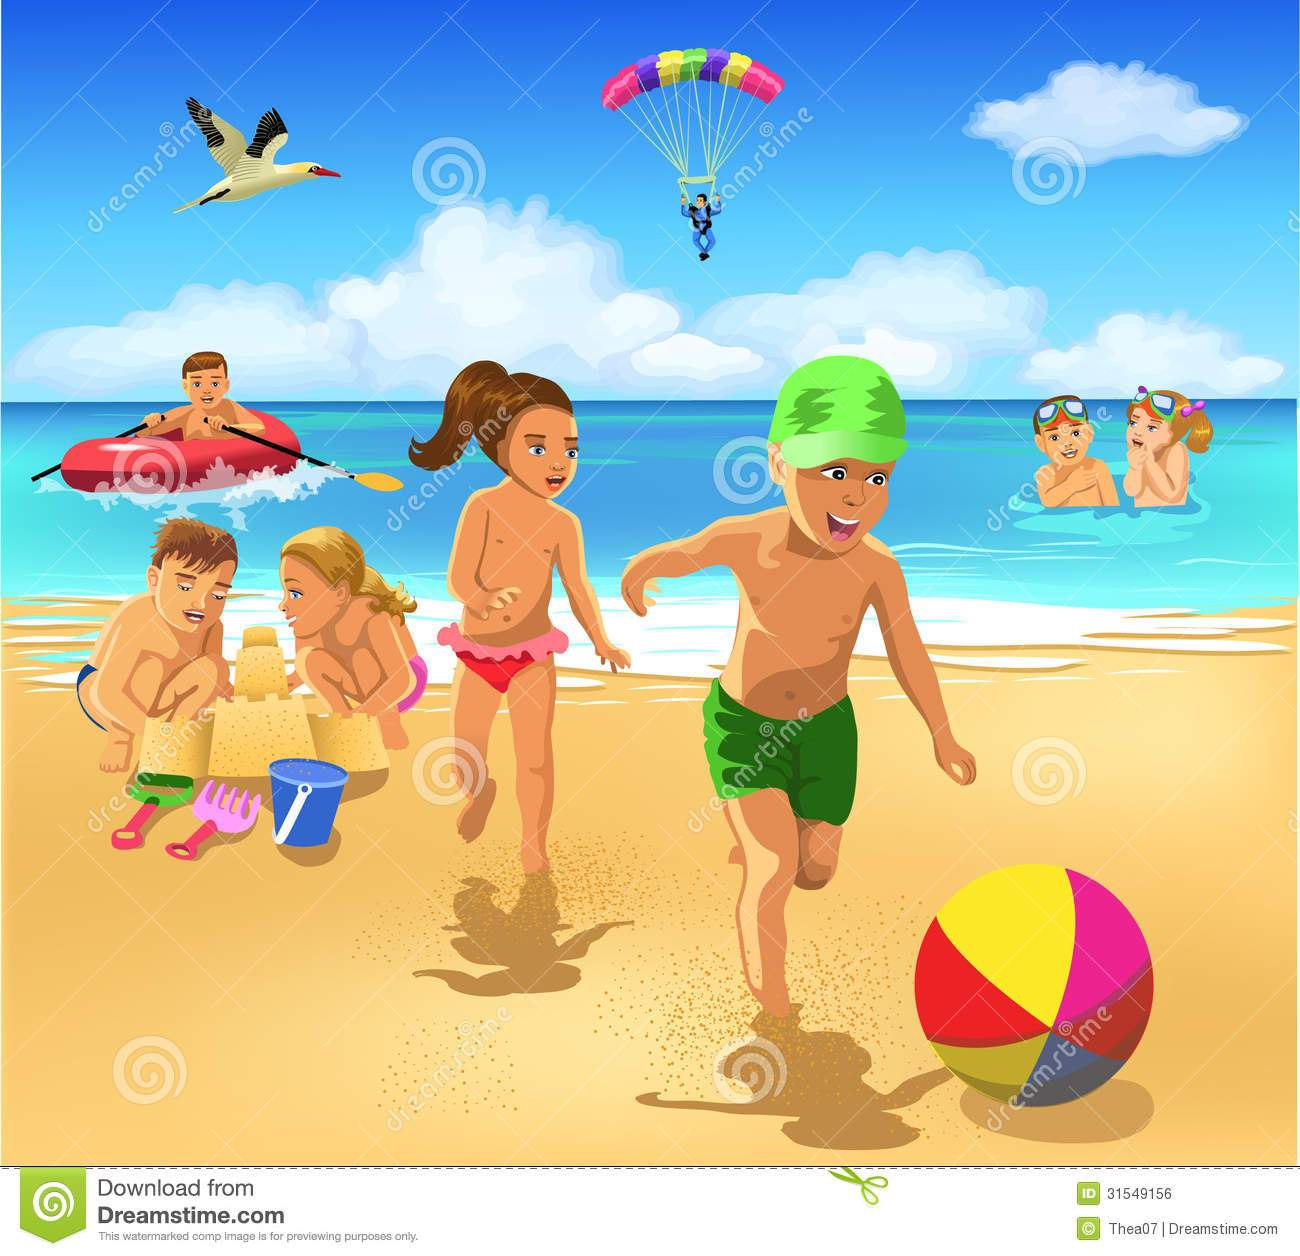 Children playing on the beach clipart 7 » Clipart Portal.